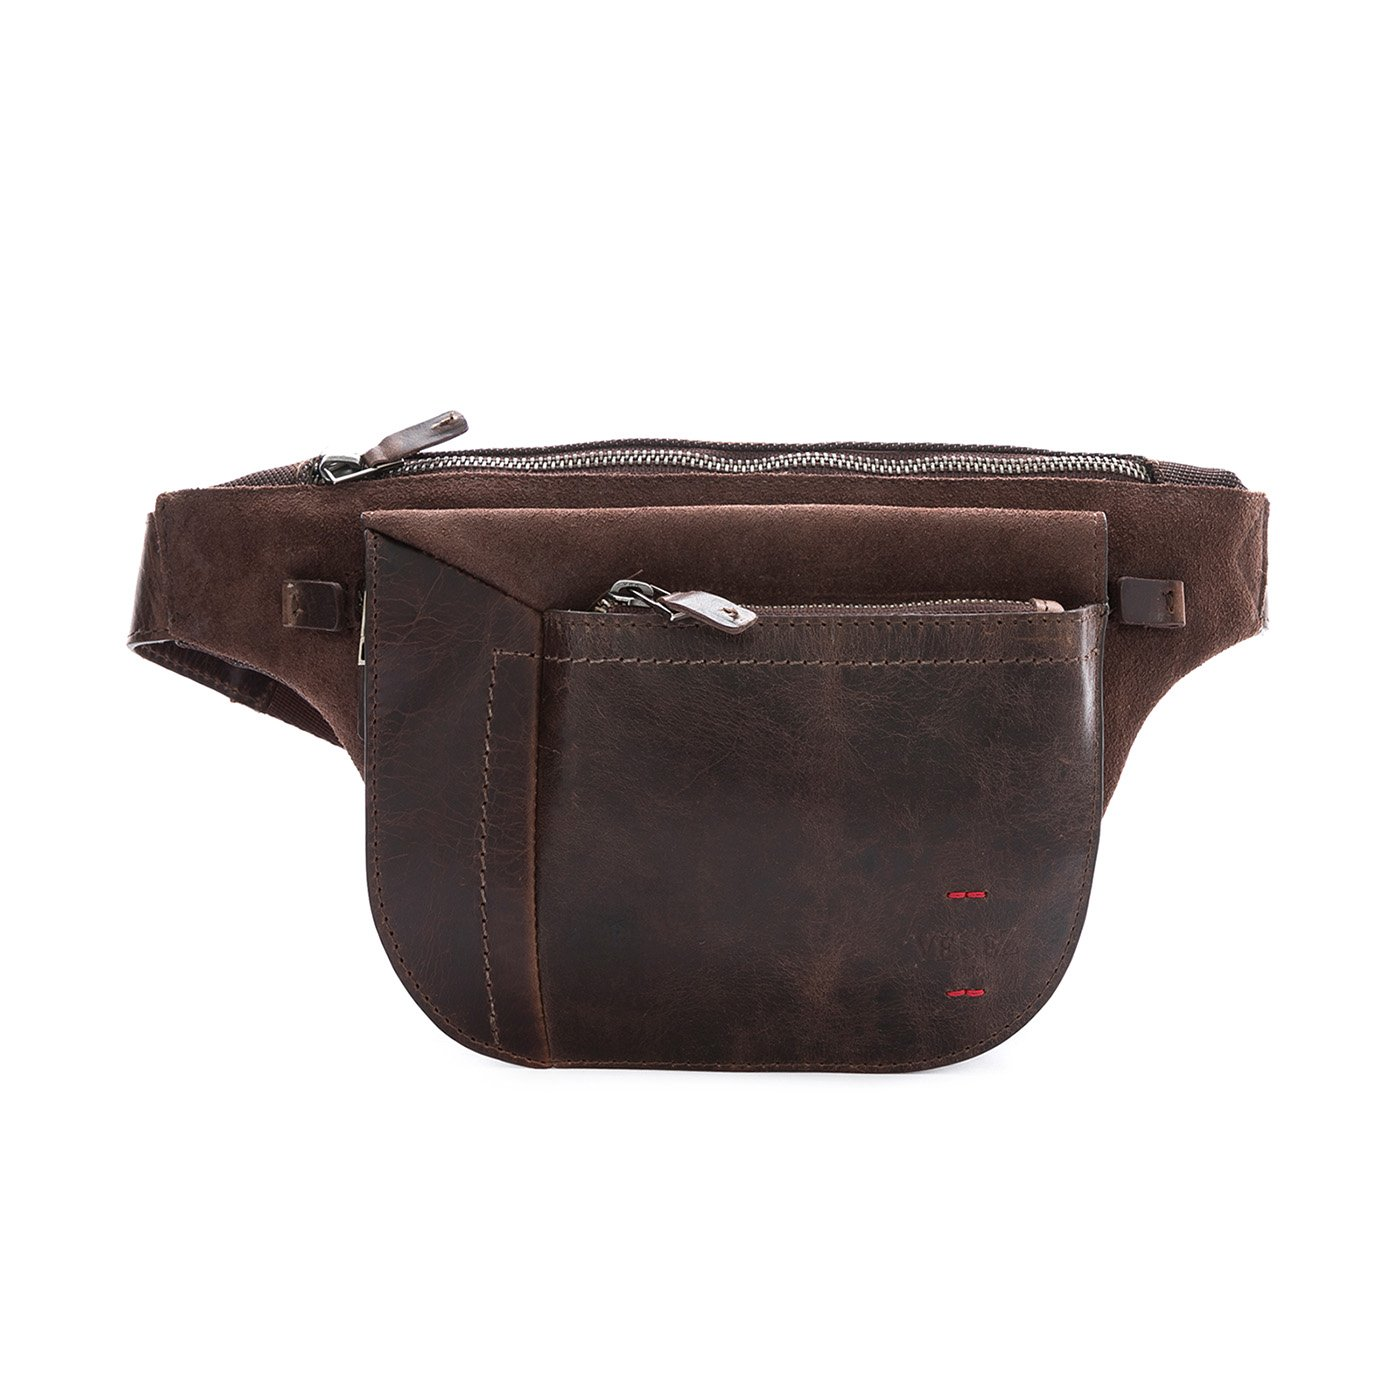 Amazon.com: Velez Mens Genuine Colombian Leather Chest Bag Waist Bag FannyPack BumBag Belt Pouch | Koala de Cuero Colombiano para Hombres Brown: 2B e